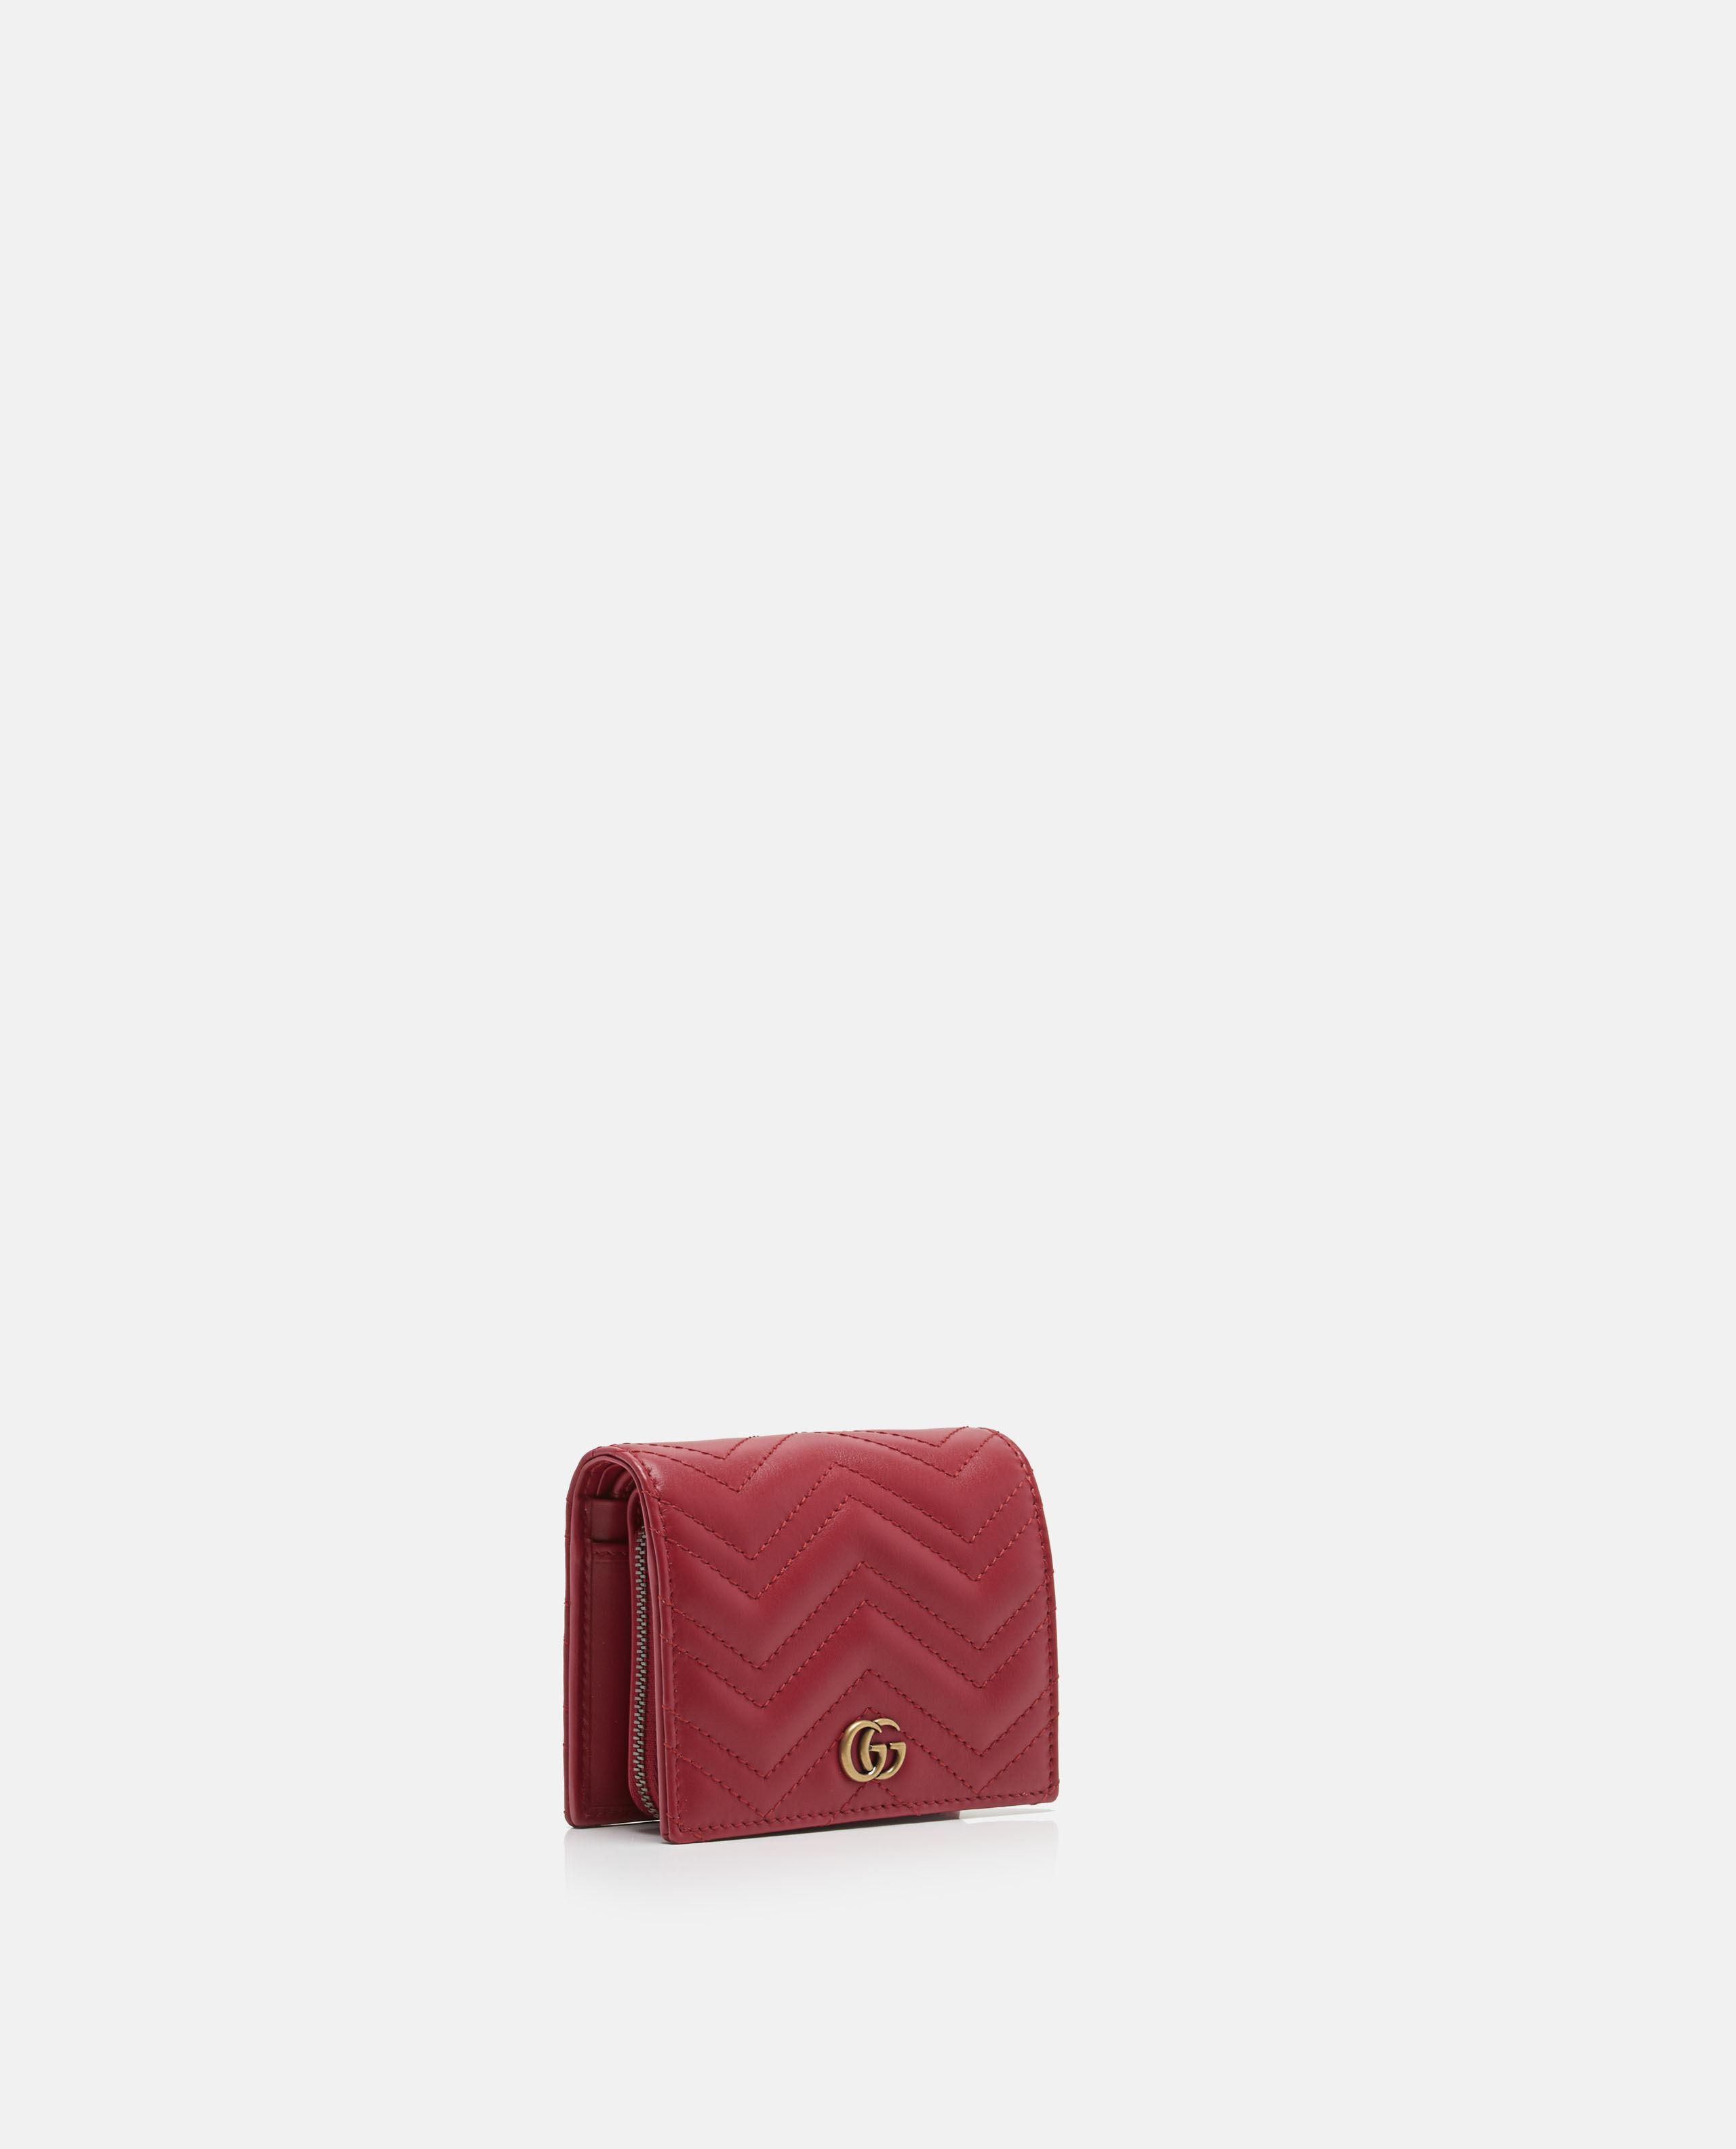 Lyst - Gucci GG Marmont Leather Wallet in Red 6b84c32318